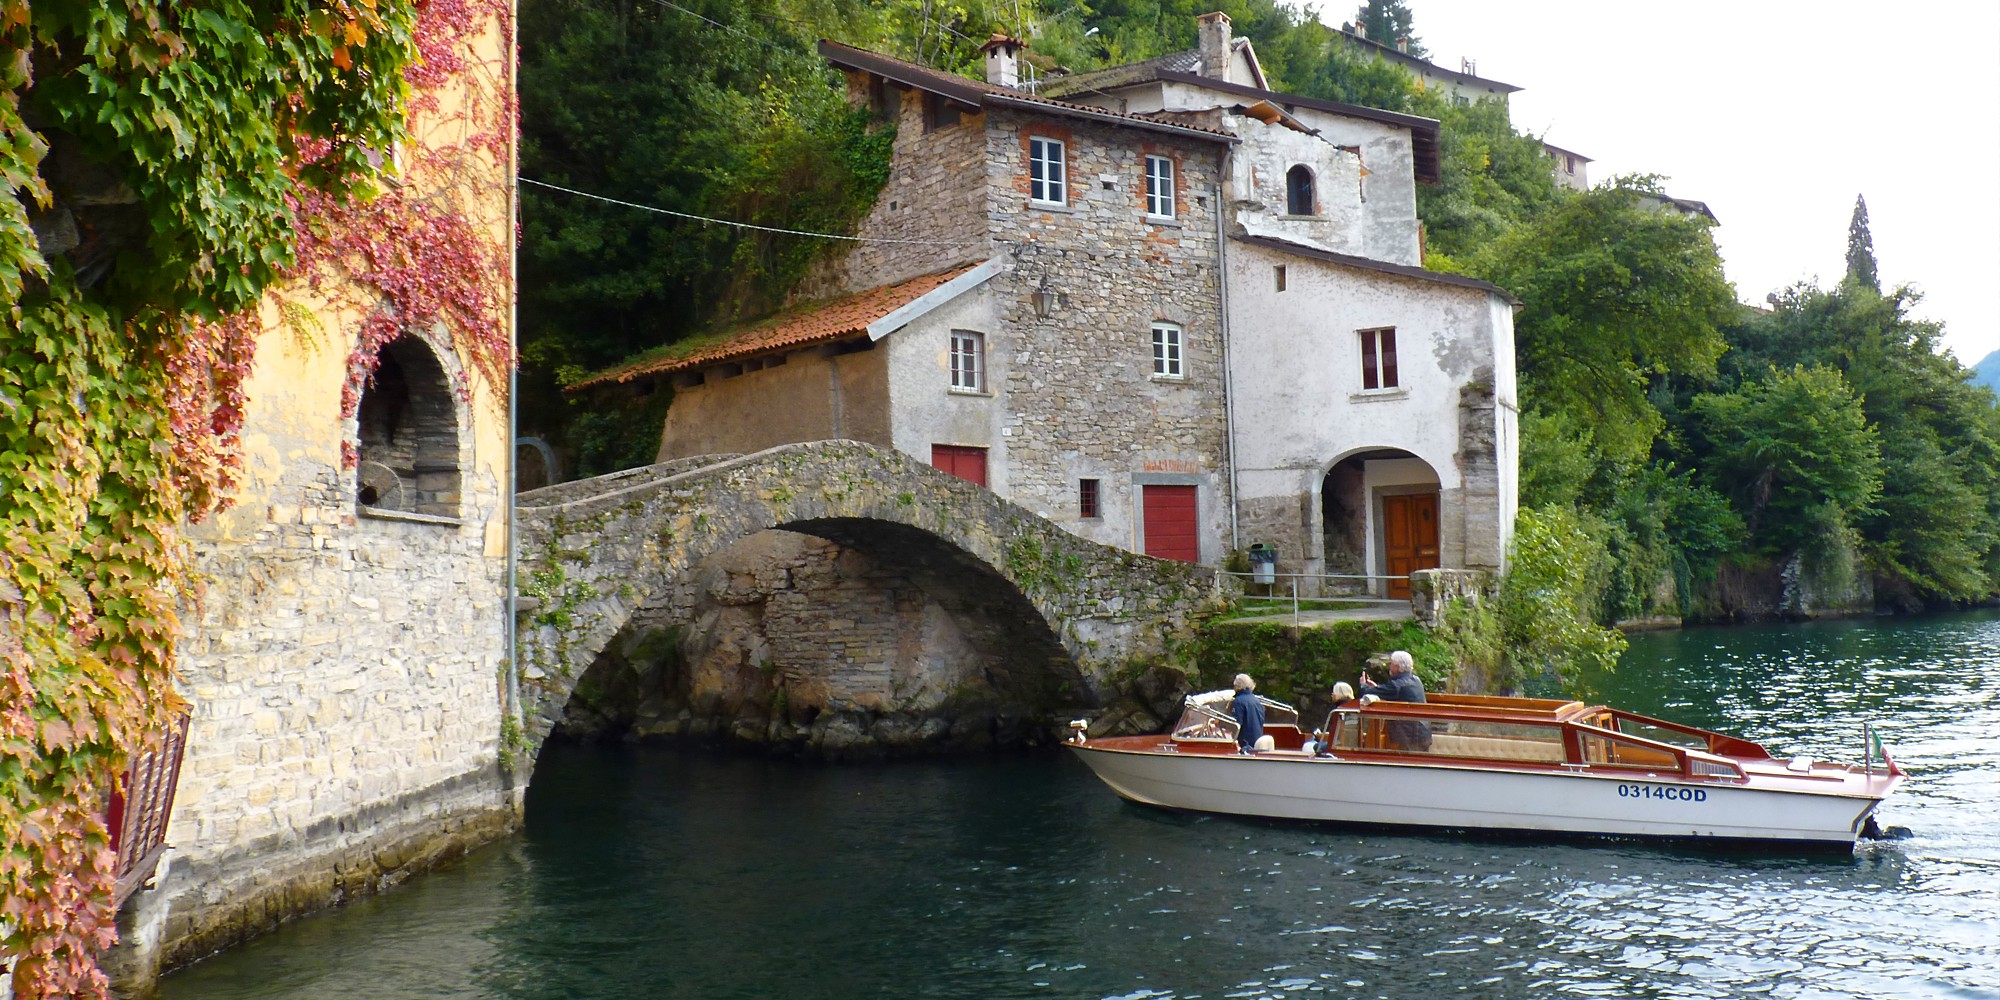 Luxury Holiday home for sale in Italy, house for sale in Italy, buy a house in Italy, Italy Farmhouse to restore, house for sale in Italy, House for sale in Tuscany, Move to Italy #MovetoItaly #ristrutturazionecasa #ristrutturazione #ig_Italy #total_Italy_IT #super_Italy #Italy_dreams #Italy_dream #Italydreaming #Italydreamer #Italydreamwillcometrue #italywishlist #italy #venditacasaindipendente #venditacasavacanze #agriturismopiemonte